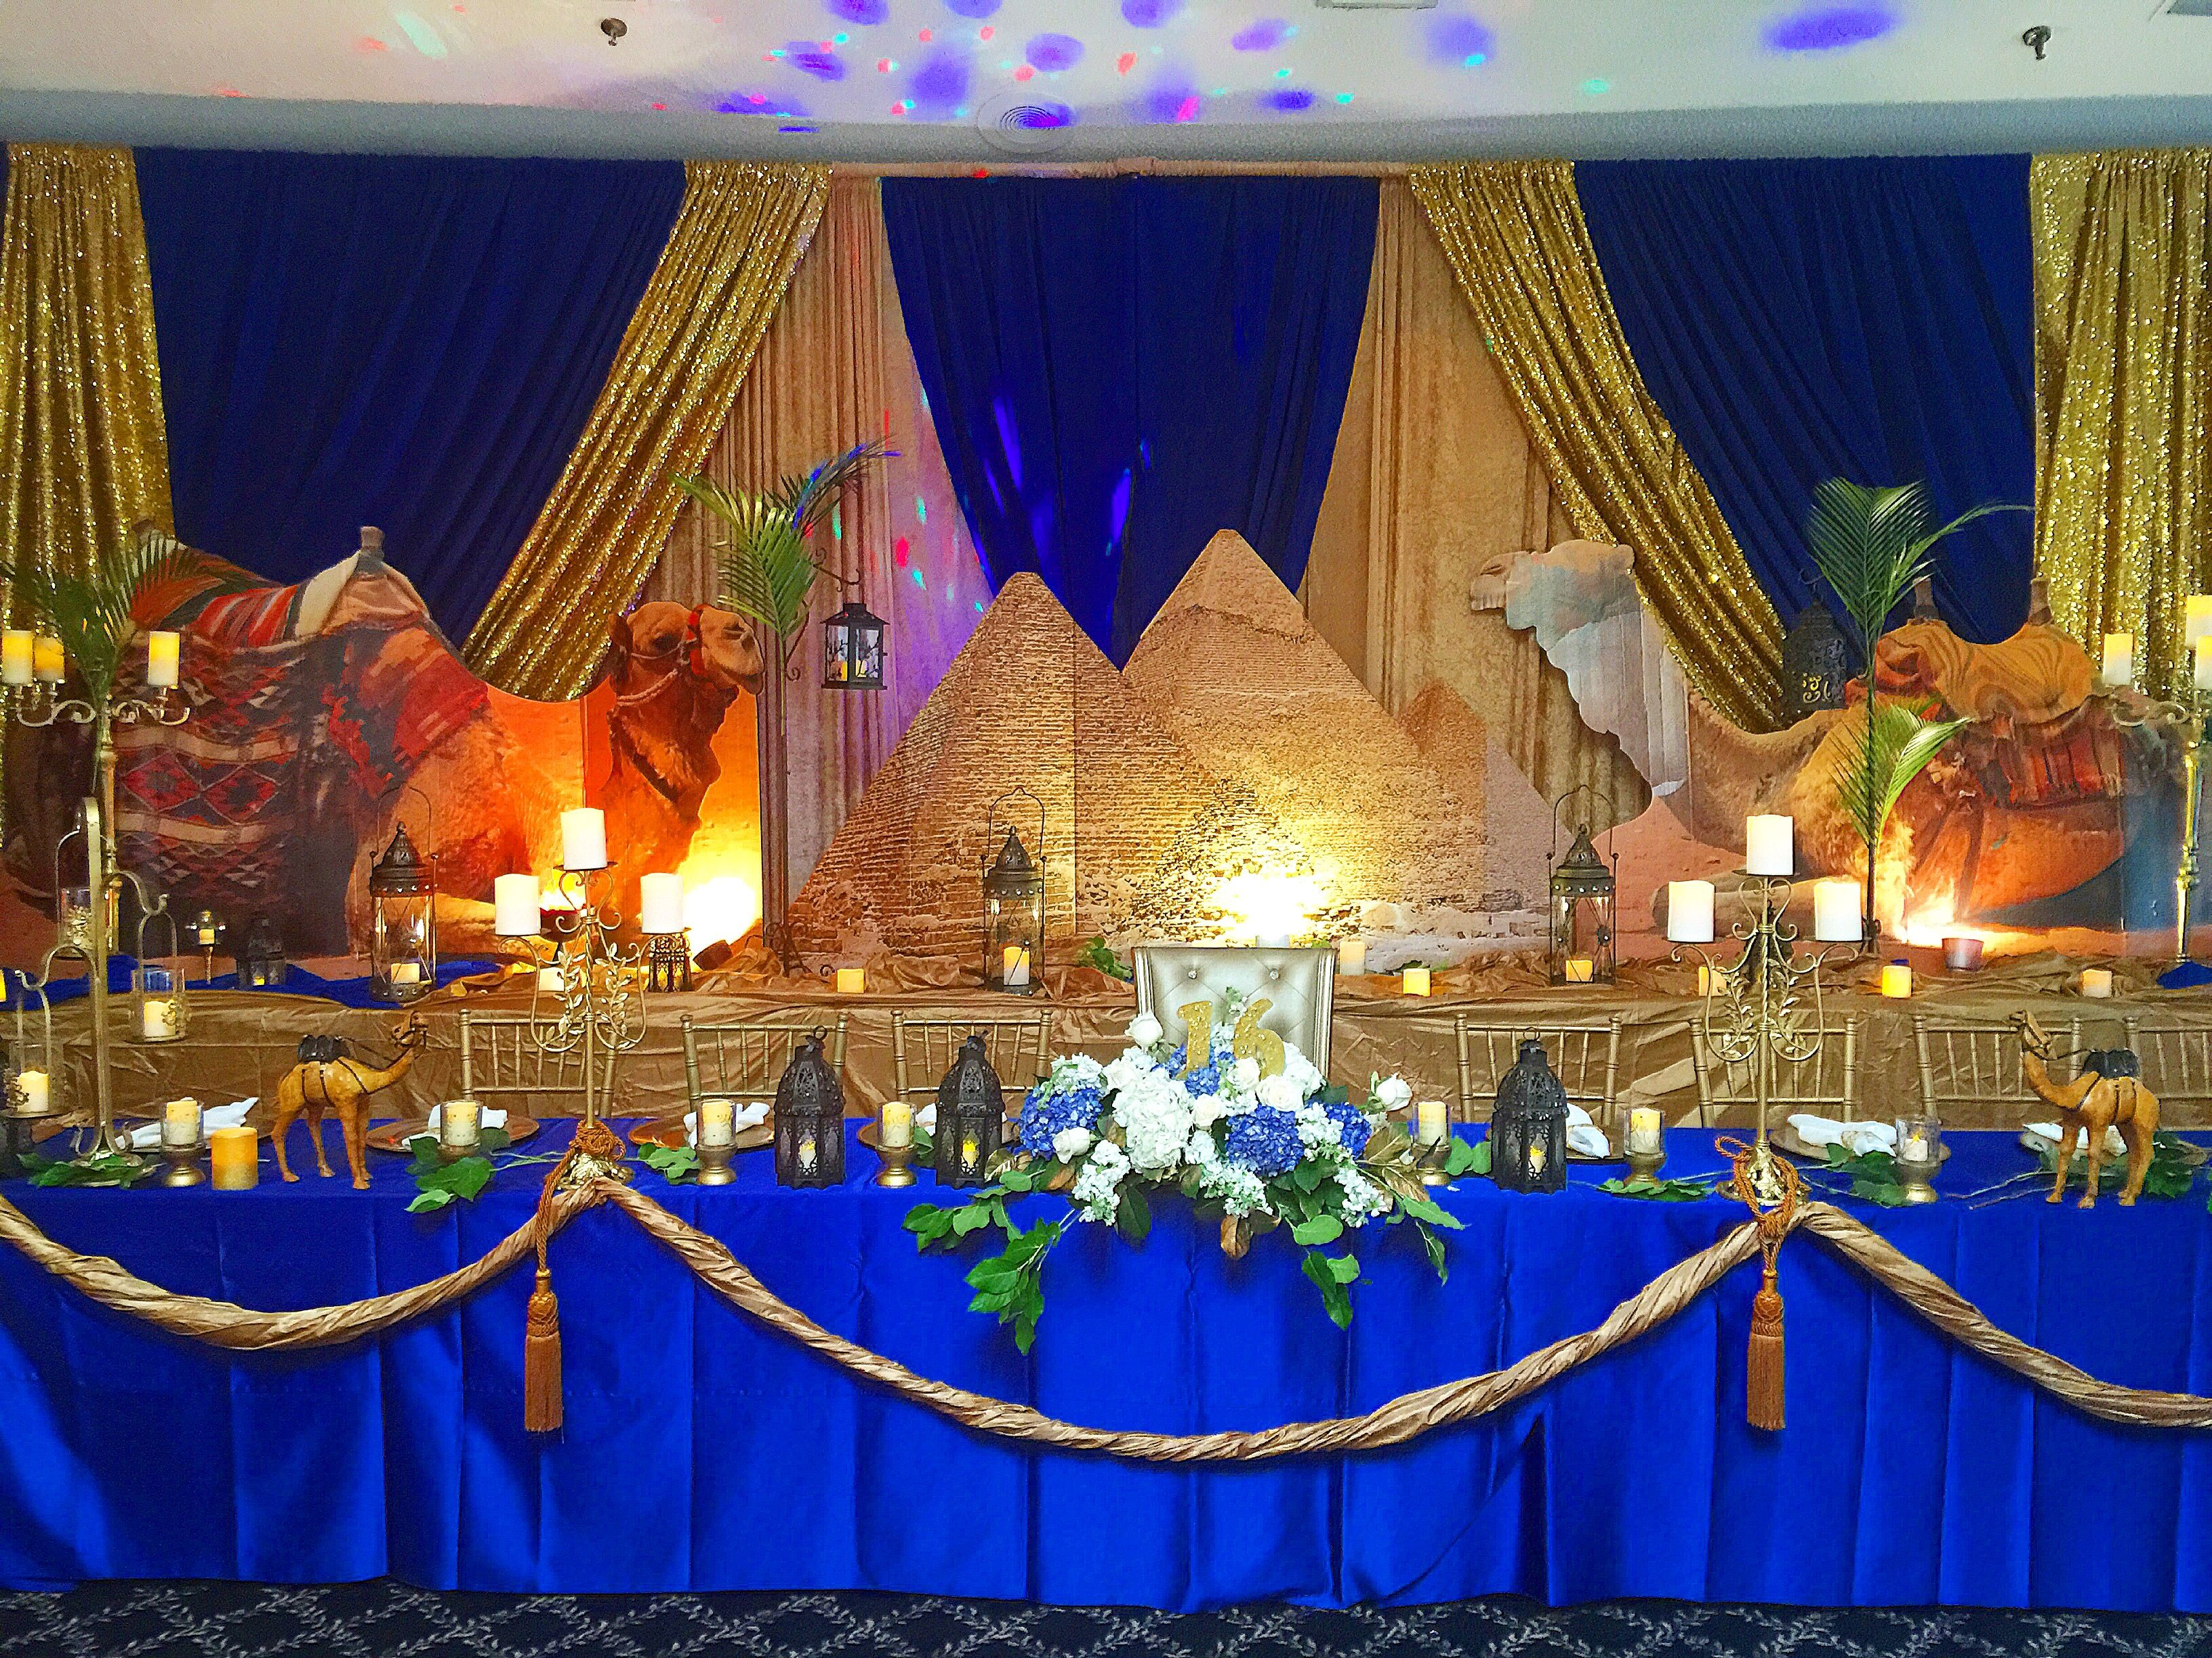 Egyptian Theme Mitzvah Decor Decorations Mitzvah Themes Decor